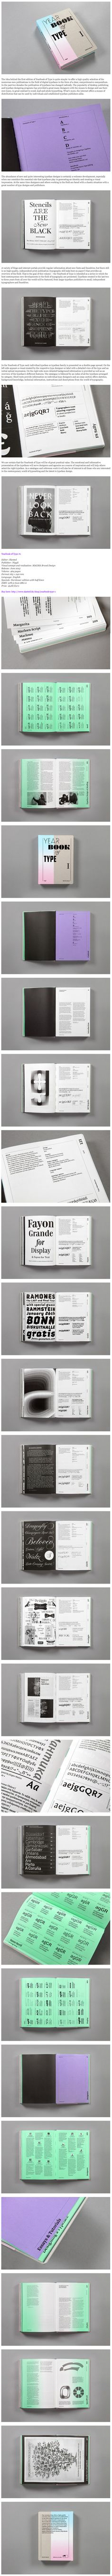 http://www.behance.net/gallery/Yearbook-of-Type-1/9495833